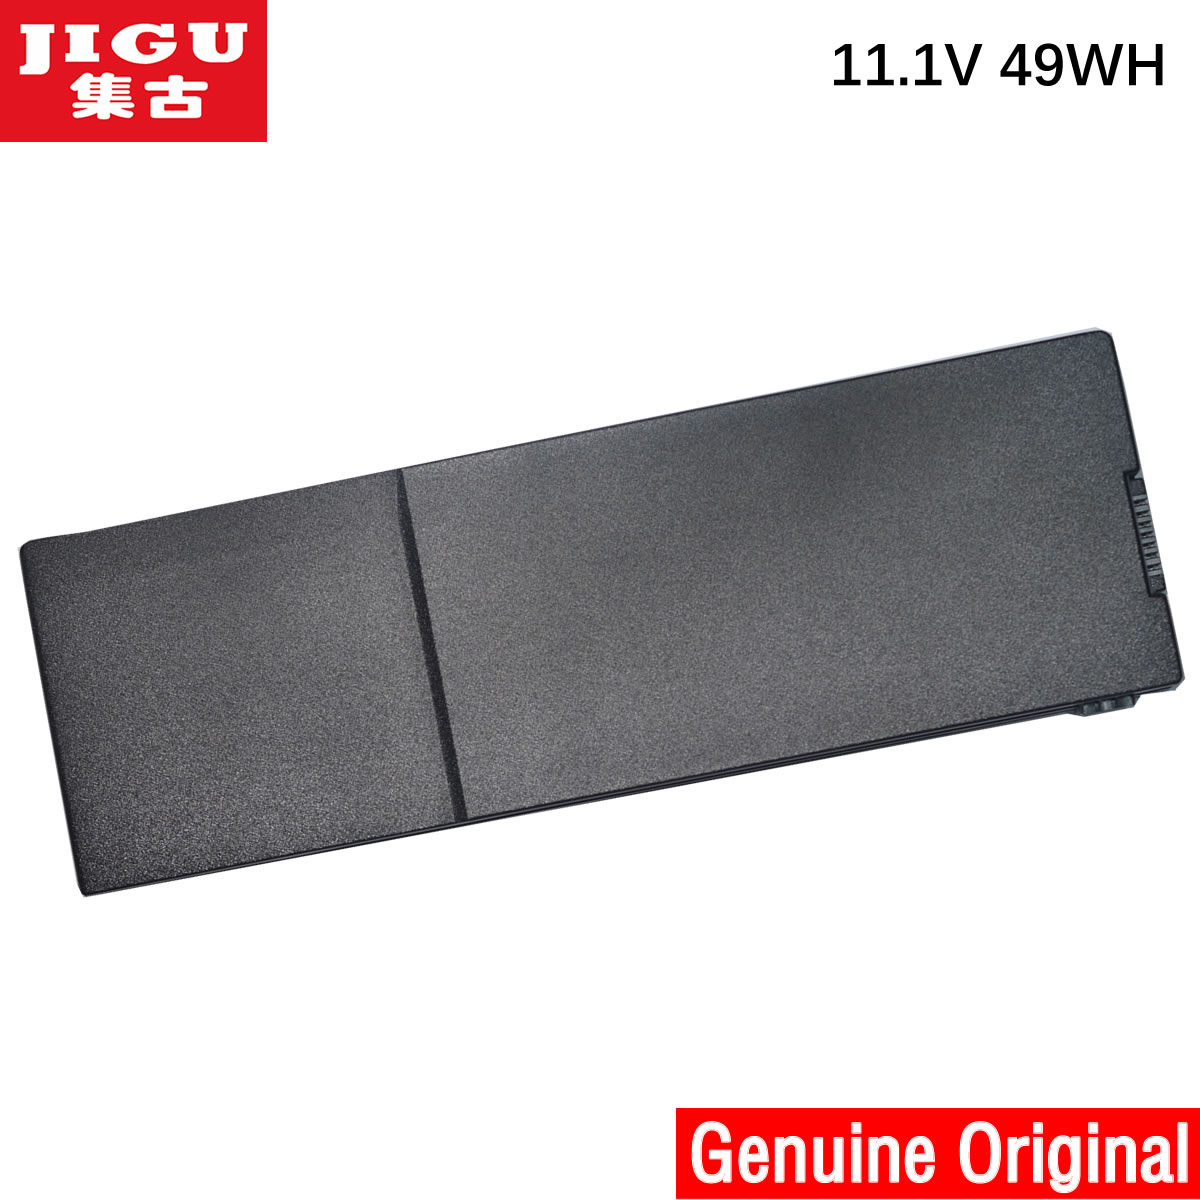 JIGU VGP-BPS24 Original laptop Battery For SONY vaio PCG-4100 SVS15 SVS13 SVS13A SVT13 SVT14 VPC-SA SB VPC-SD VPC-SE 16 4 laptop lcd screen display matrix panel wxga ccfl lq164m1ld4c for sony vaio vpc f vpcf13s8r vpc f115fm pcg 81212 81114l f1